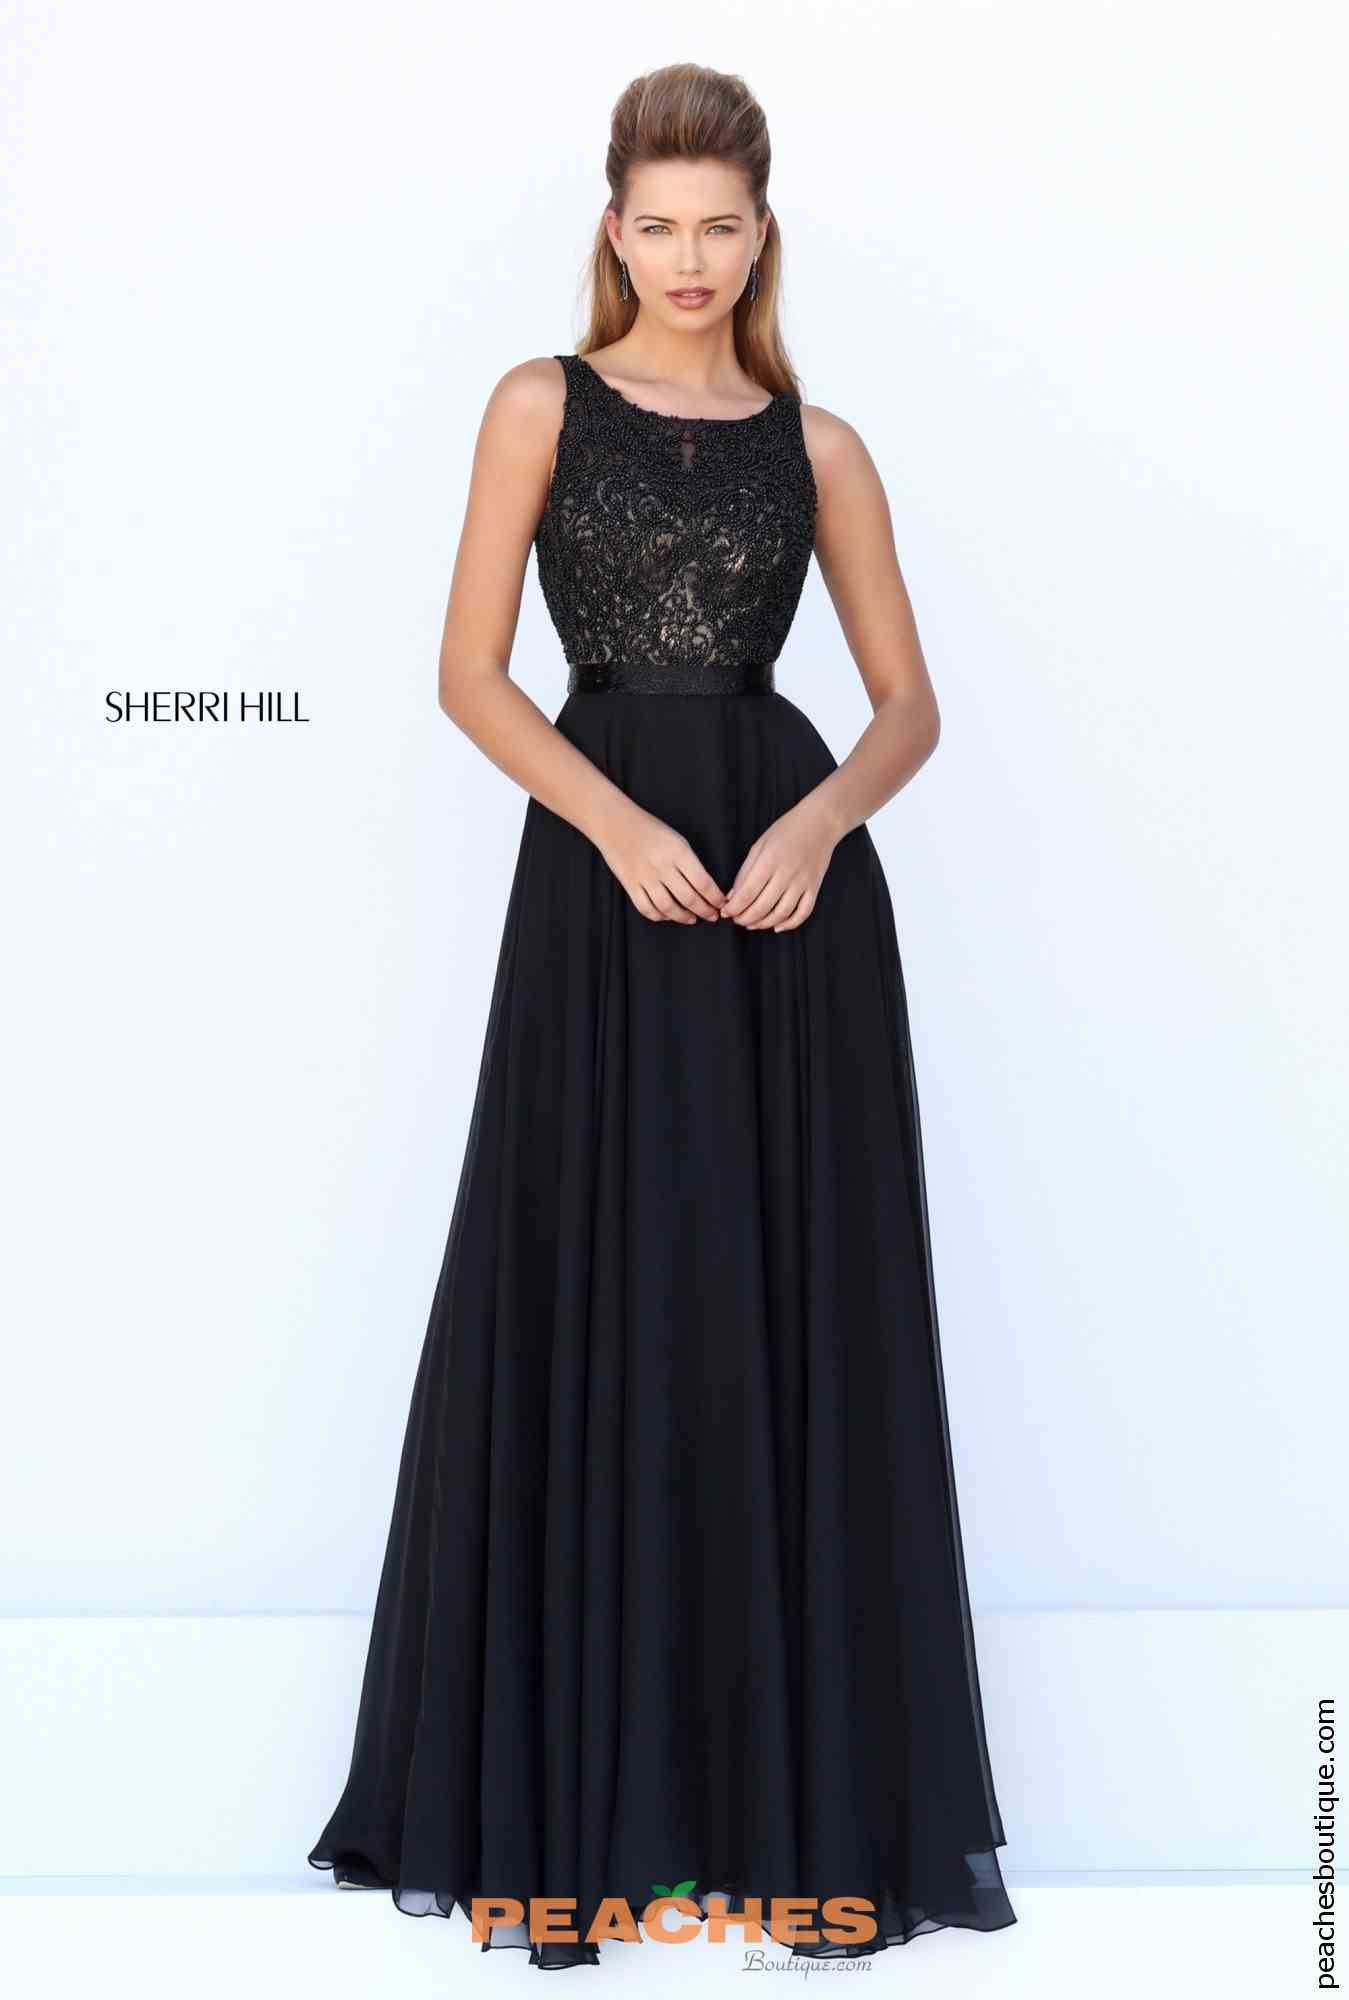 Size 00 Black Sherri Hill 50397 Beaded Long Prom Dress- This style from Sherri  Hill is a sleeveless long chiffon dress with a heavily beaded bodice and ...